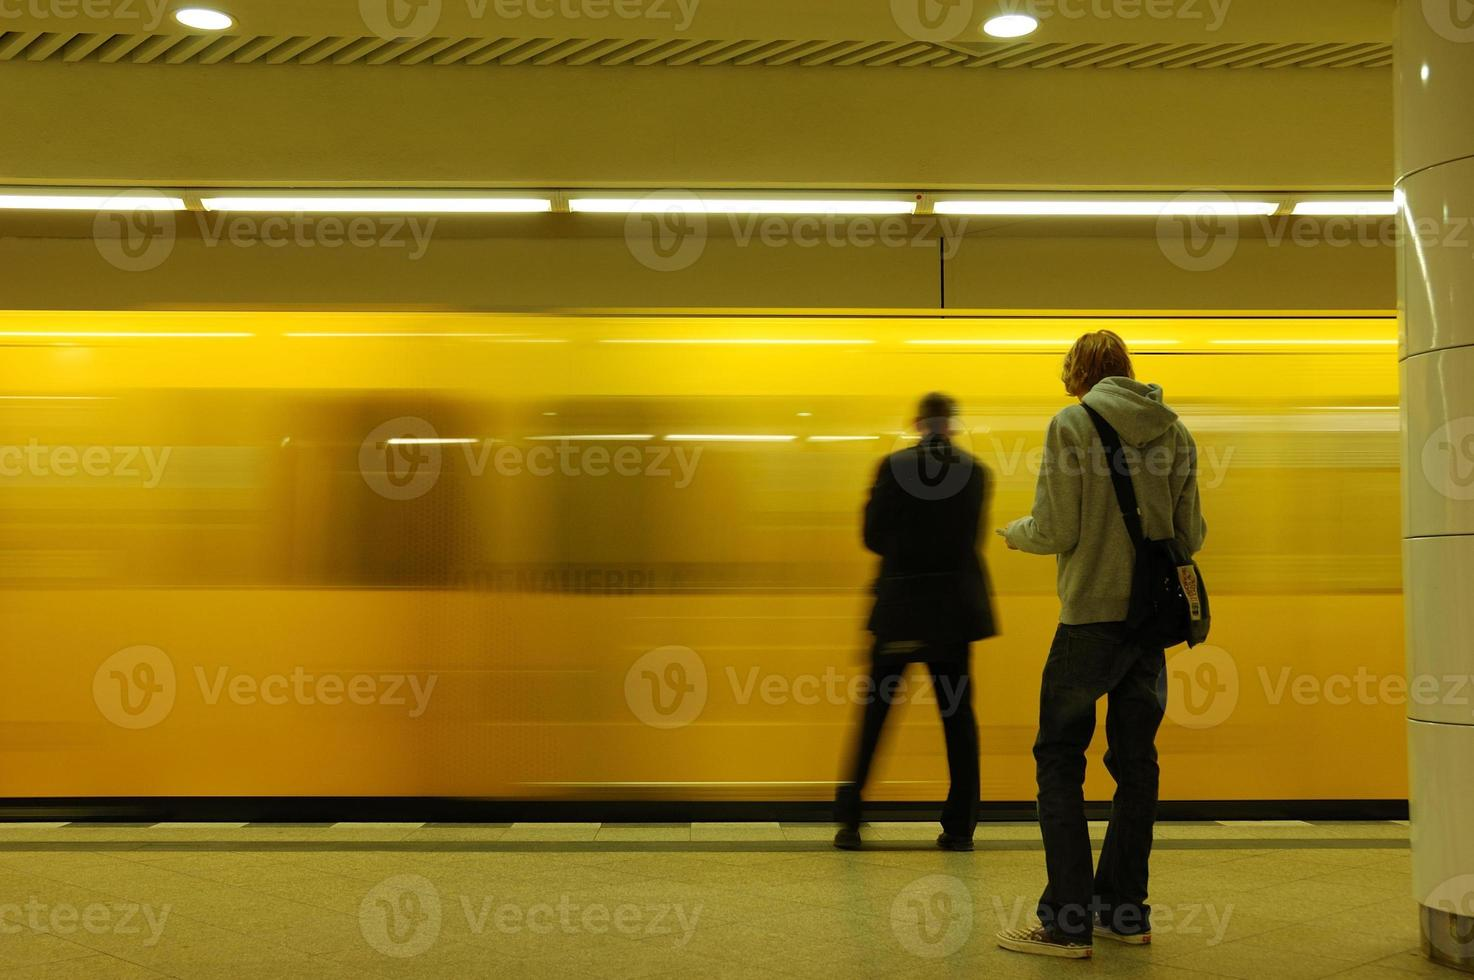 In the Subway Station photo